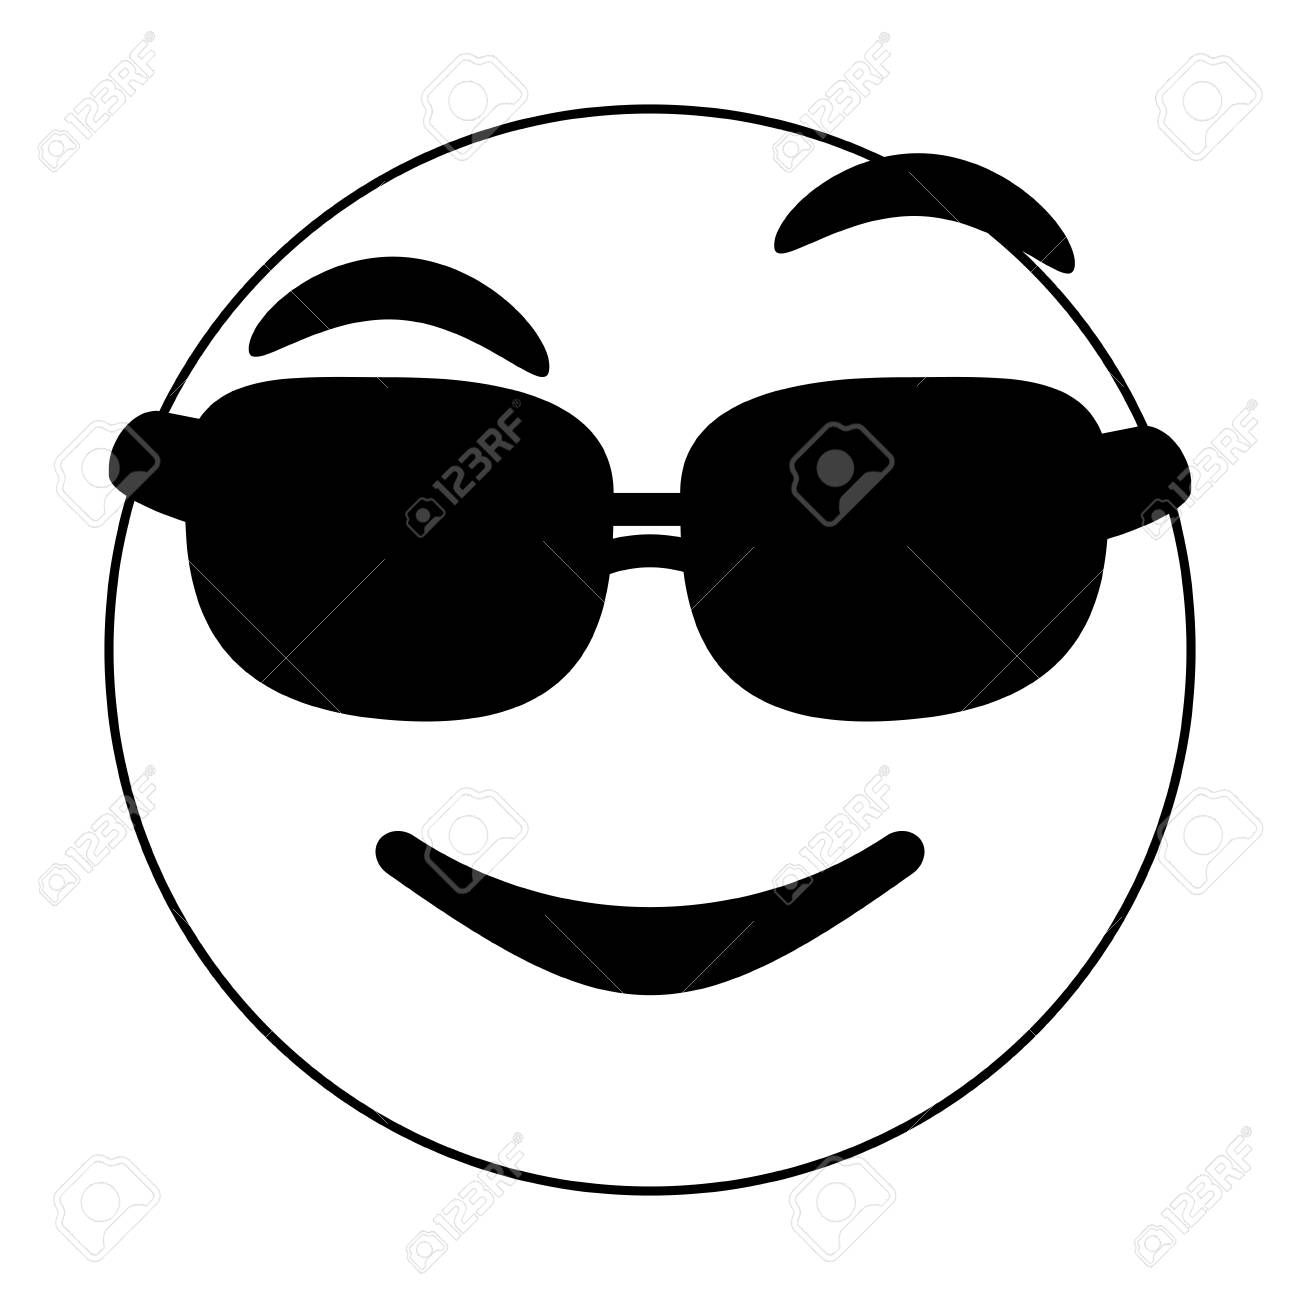 Black and white cool emoji over white background vector illustration stock vector 84680662